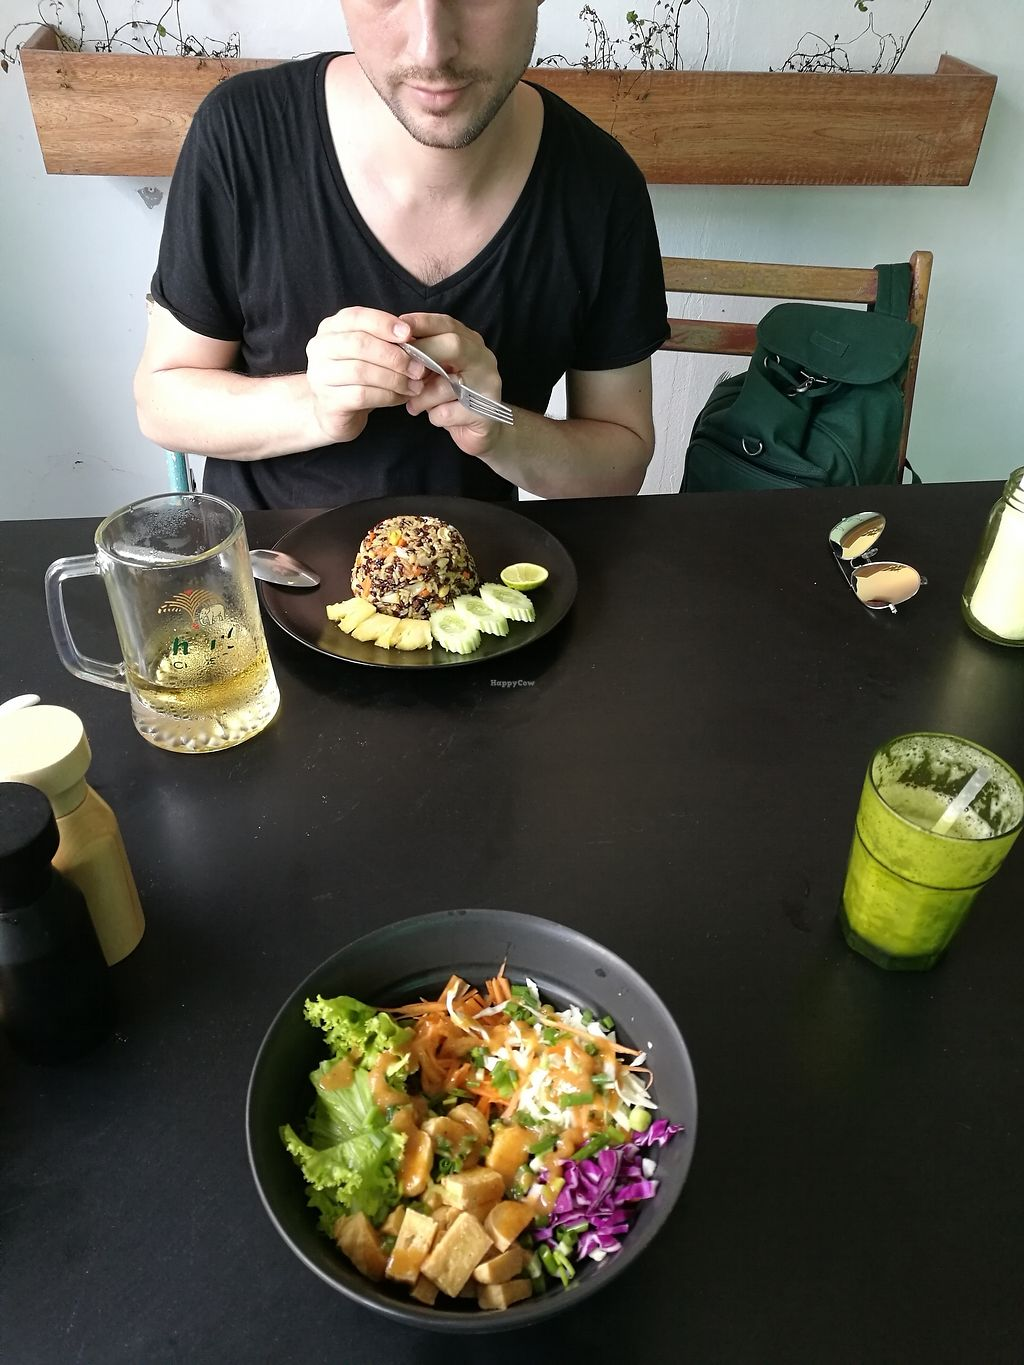 "Photo of Green Shelter  by <a href=""/members/profile/Lyssi"">Lyssi</a> <br/>Fried rice with pineapple (150b) and veggie bowl. Pineapple mint juice shale - amazing <br/> February 26, 2018  - <a href='/contact/abuse/image/108418/364136'>Report</a>"